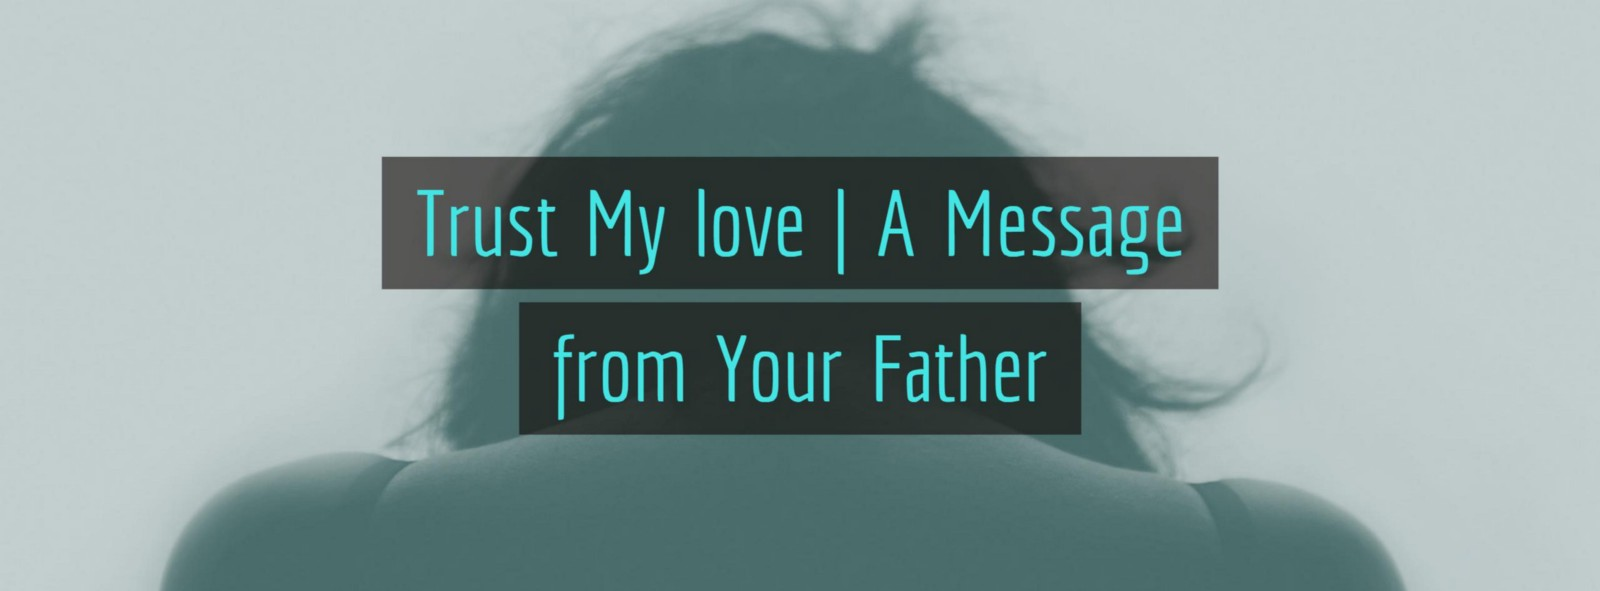 Trust My Love A Message From Your Father Imonje Kubai Medium